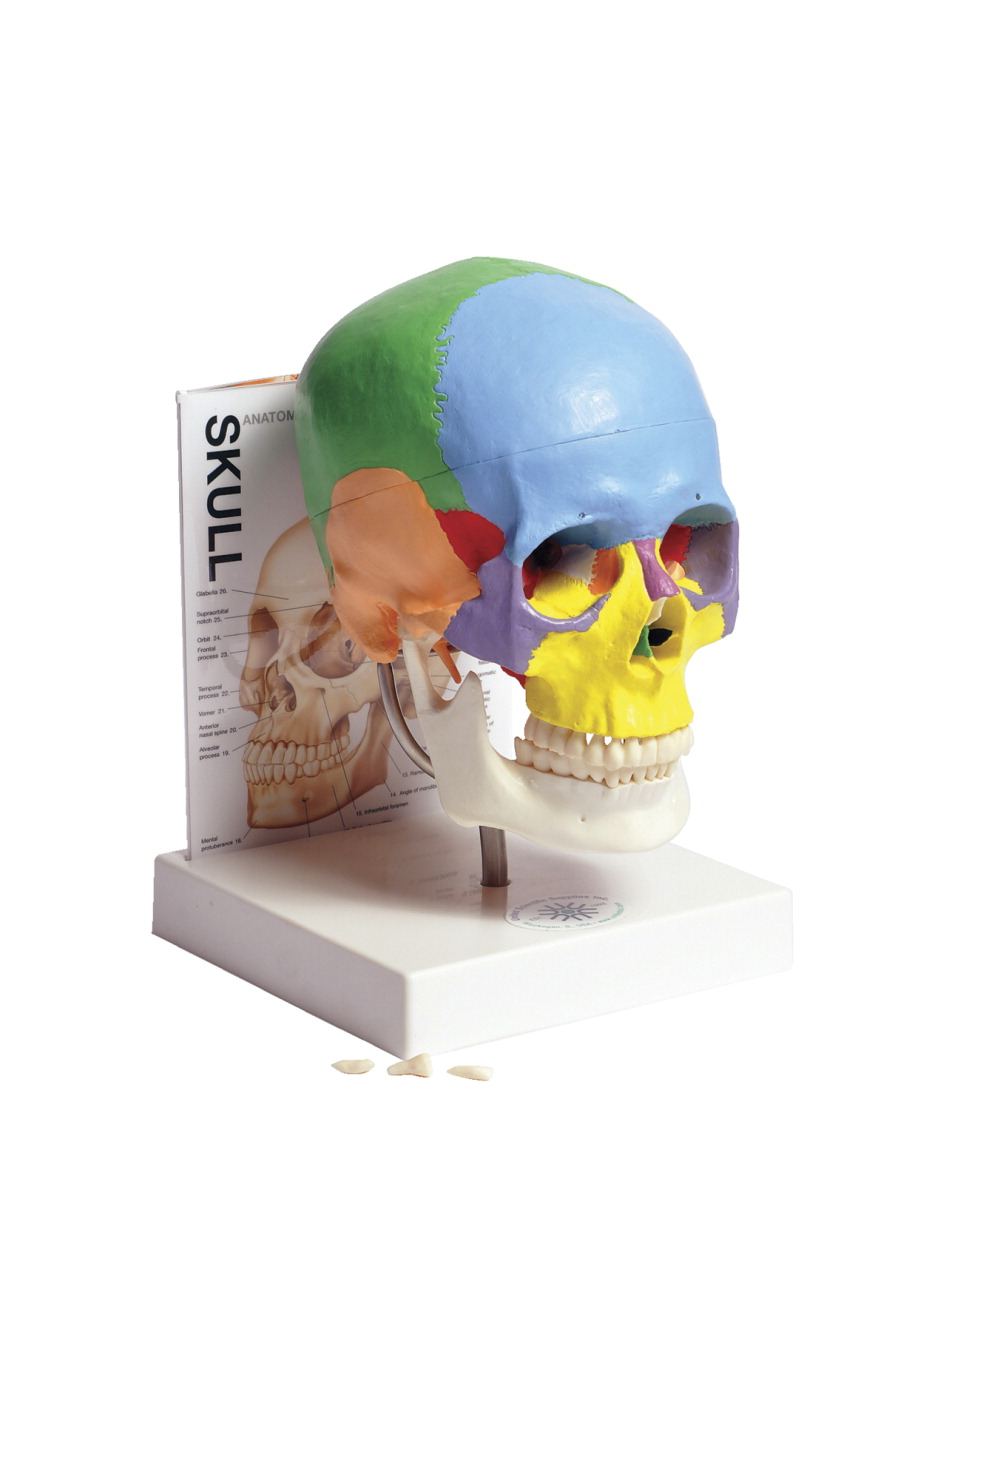 United Scientific Human Skull With Guide School Specialty Marketplace